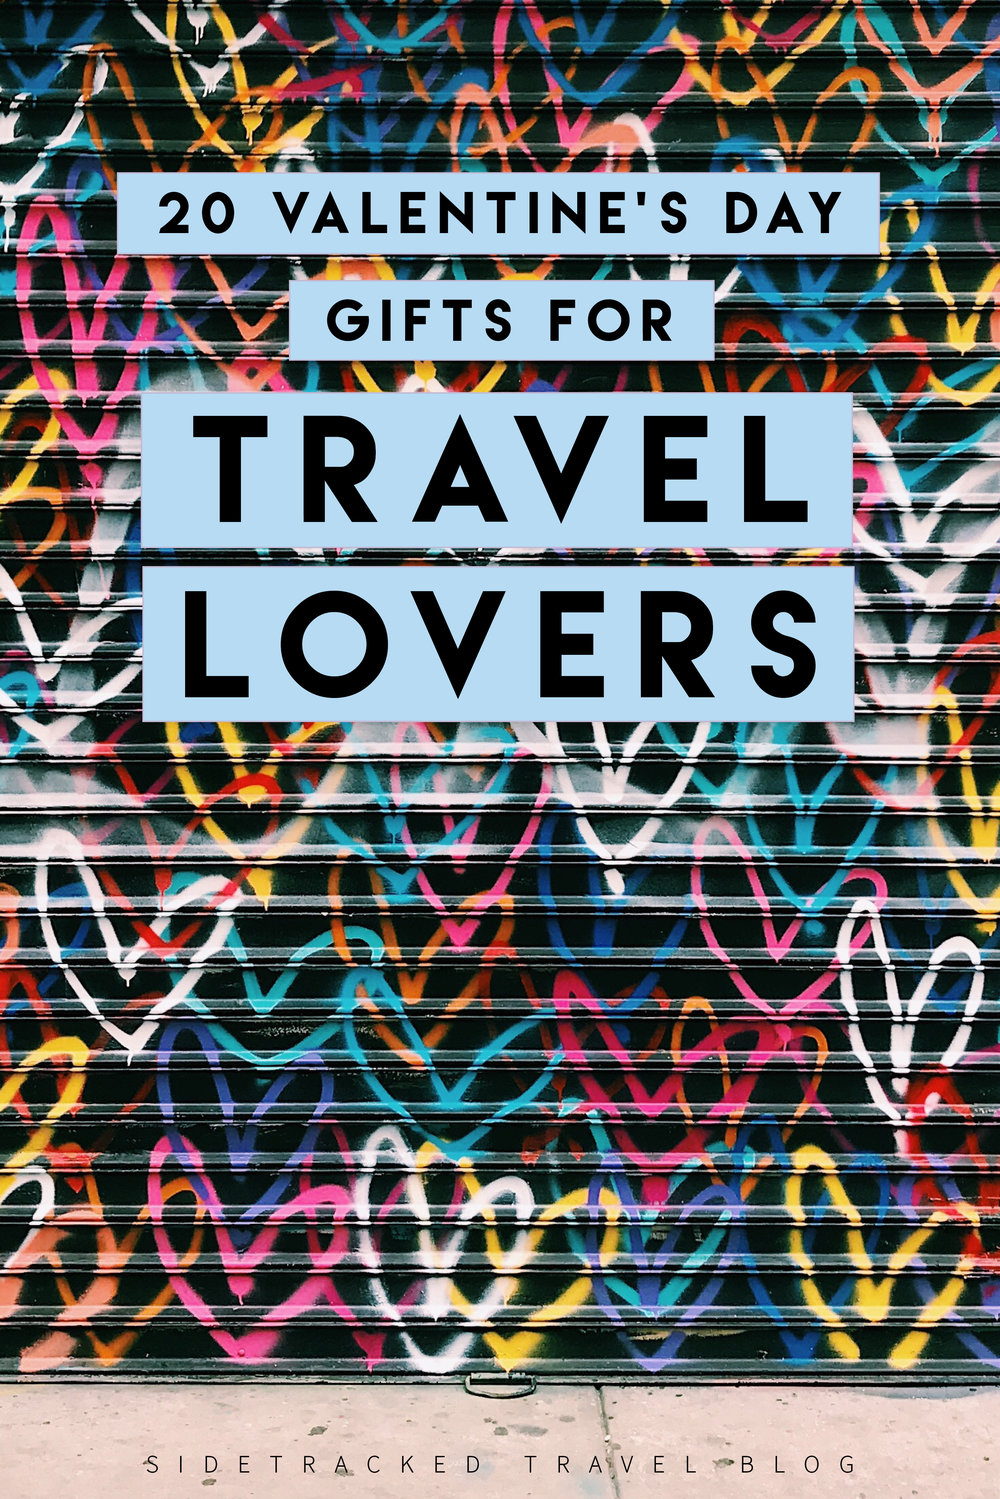 If you're looking for something worthwhile and practical to get for your Valentine, this article contains a curated selection of functional gear, inspiring travel books, useful gifts for guys and gals, and some other fun 'under $100' items.